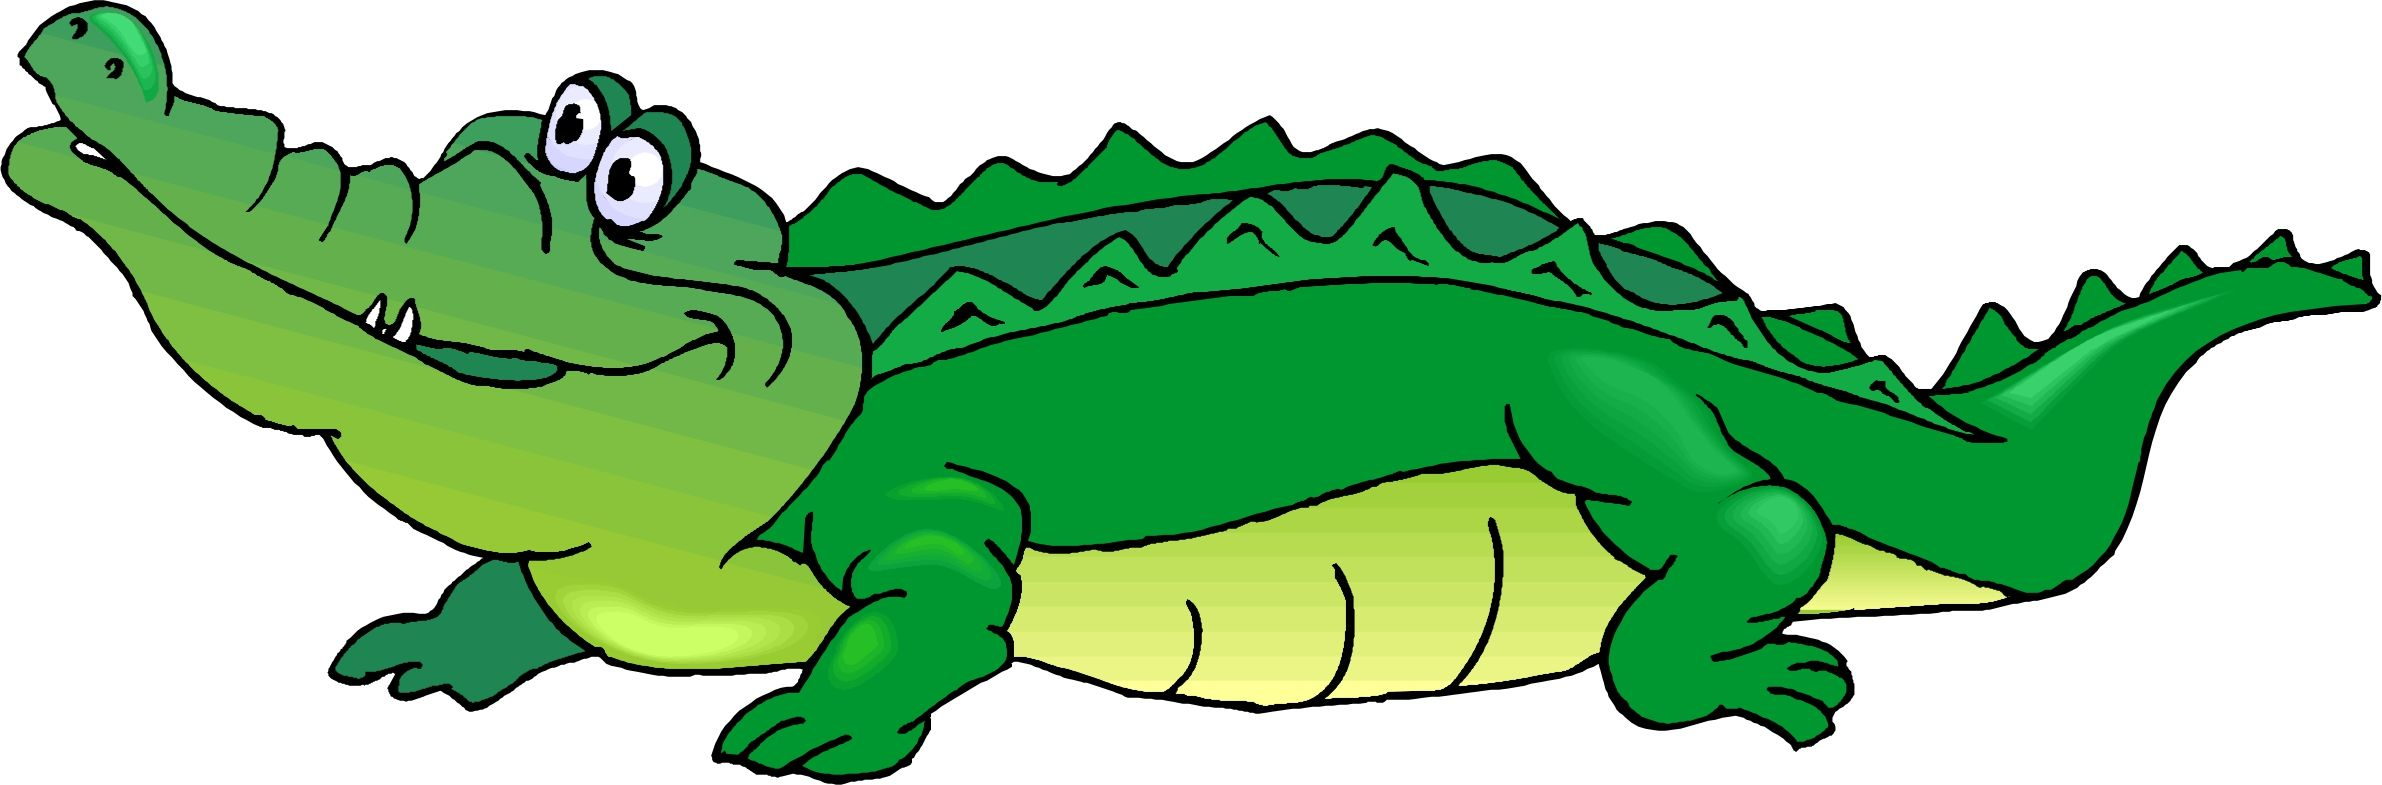 Image result for cartoon alligator